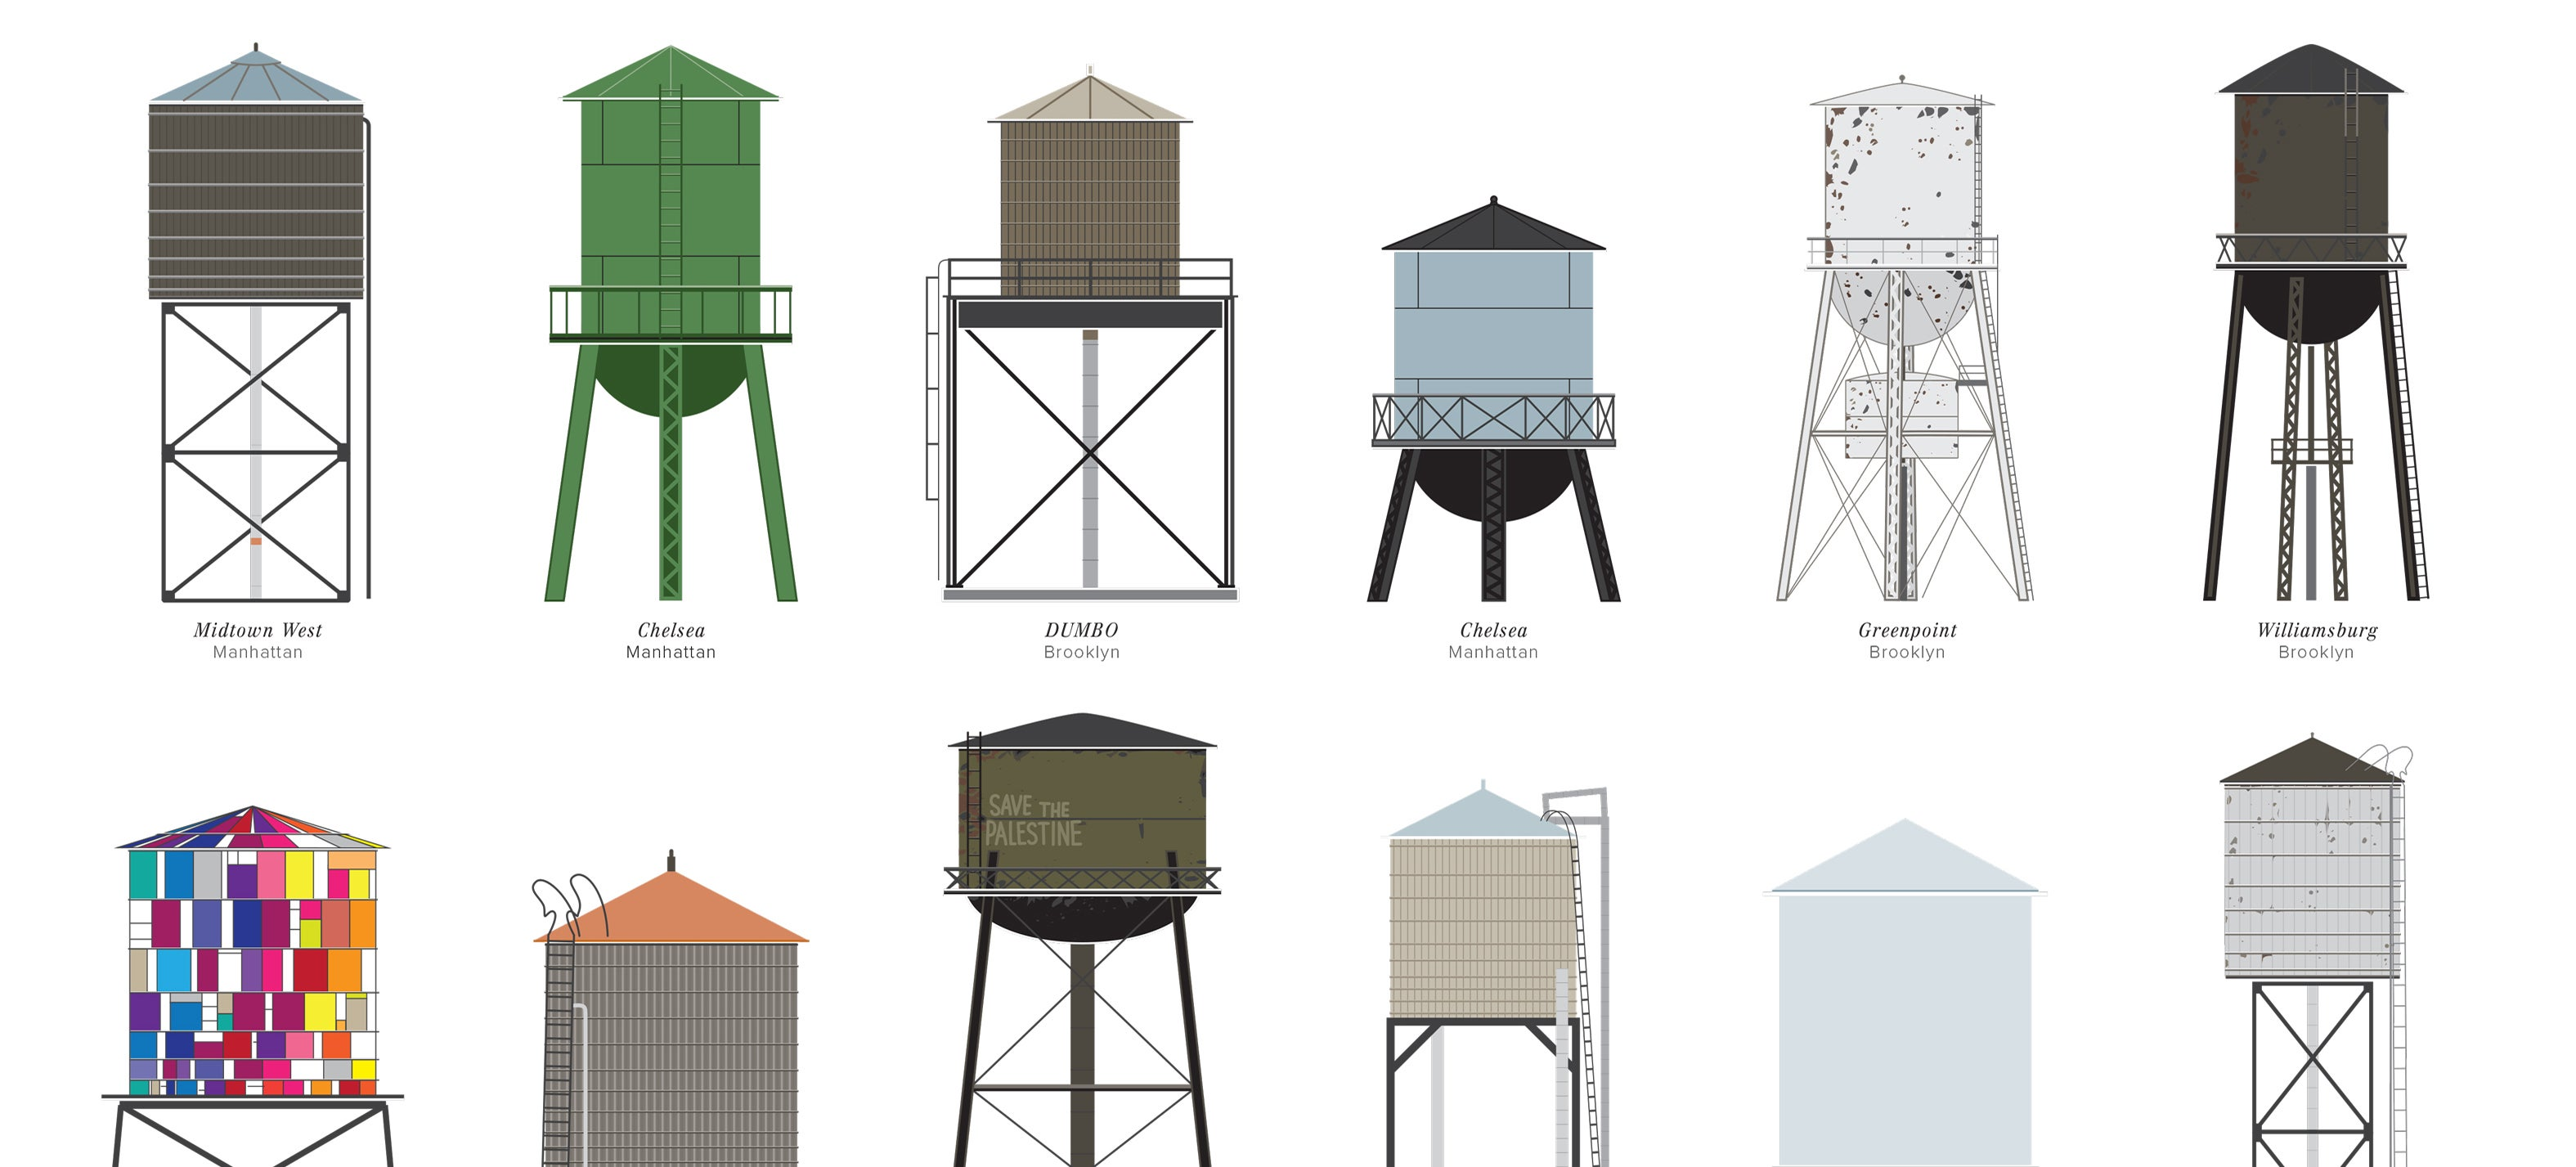 The Dirty Dilapidated And Delightful Water Towers Of New